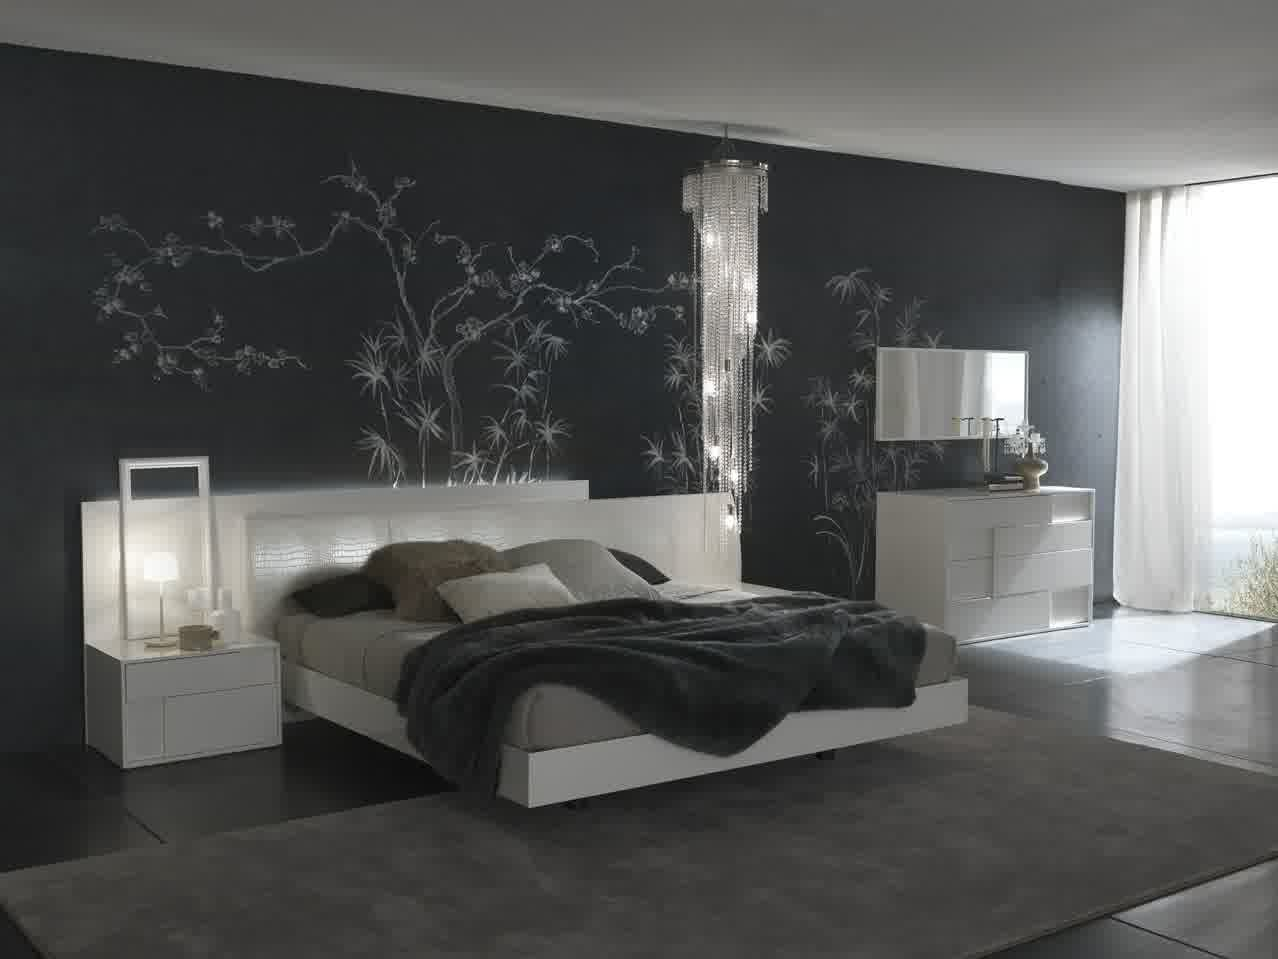 Goth Bedroom Decorating Ideas Romantic Dark Gothic Bedroom Ideas Layjao